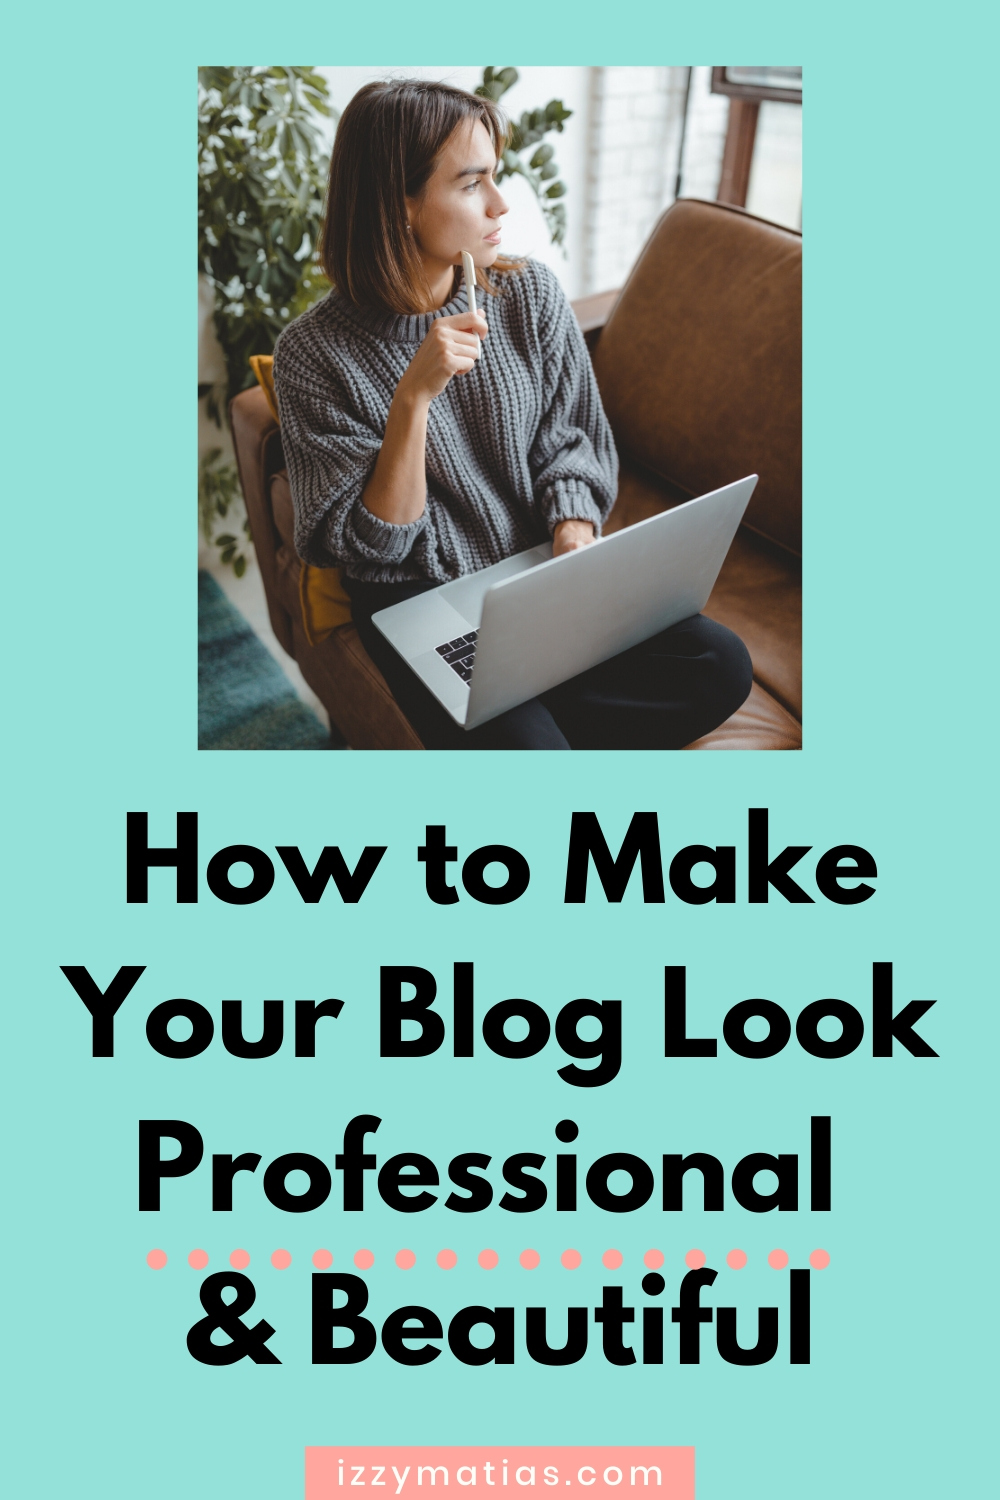 Blogging tips on how to make your blog look professional and beautiful. Read this guide to find out the tweaks you can apply to improve your blog design.